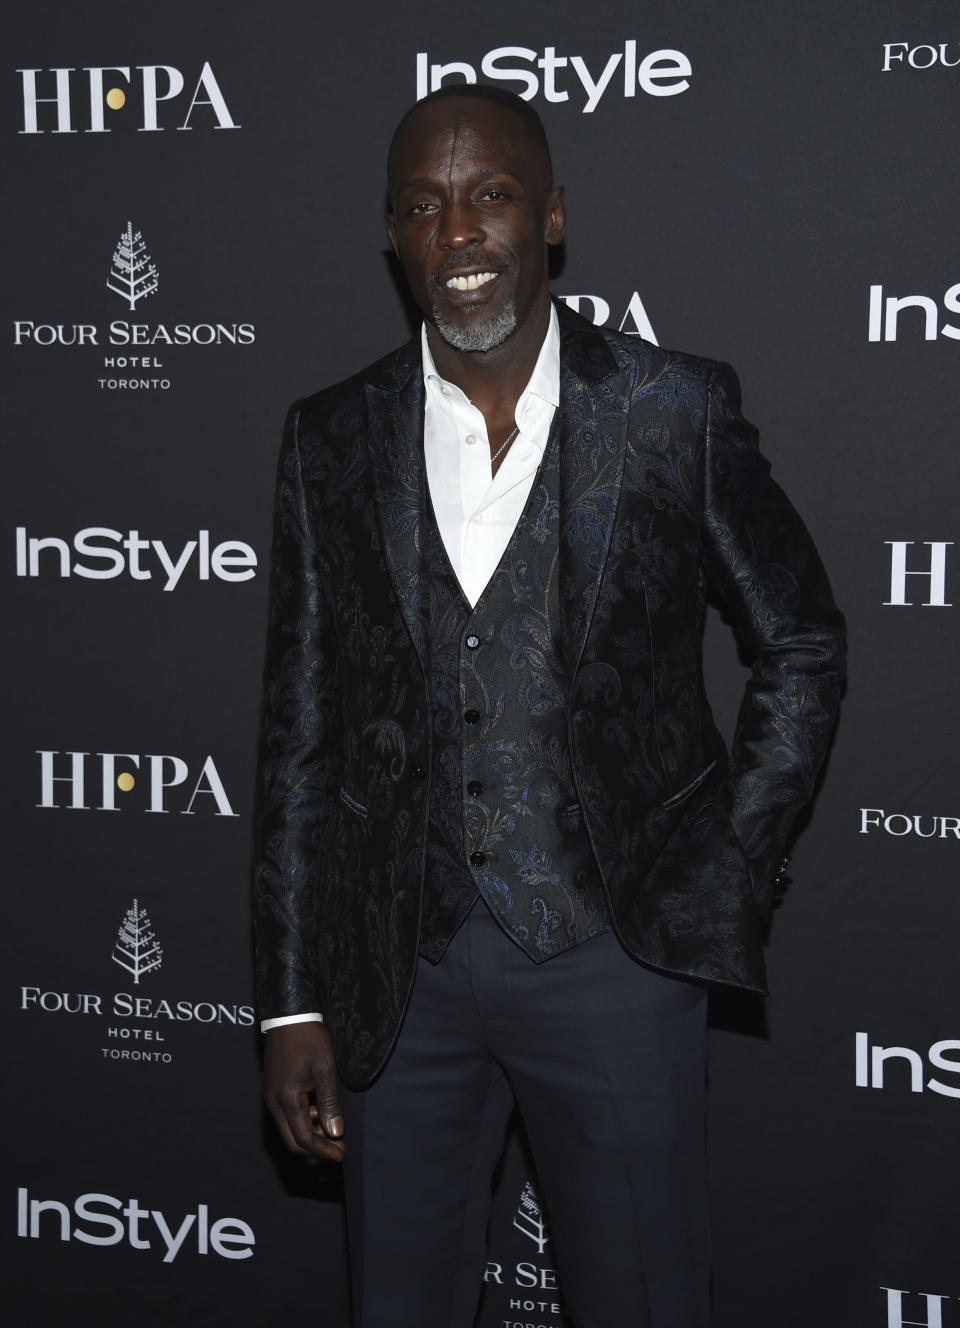 """FILE - In this Saturday, Sept. 8, 2018, file photo, actor Michael K. Williams attends the Hollywood Foreign Press Association/InStyle party on Day 3 of the Toronto International Film Festival at the Four Seasons Hotel Toronto in Toronto. Williams, who played the beloved character Omar Little on """"The Wire,"""" has died. New York City police say Williams was found dead Monday, Sept. 6, 2021, at his apartment in Brooklyn. He was 54. (Photo by Evan Agostini/Invision/AP, File)"""